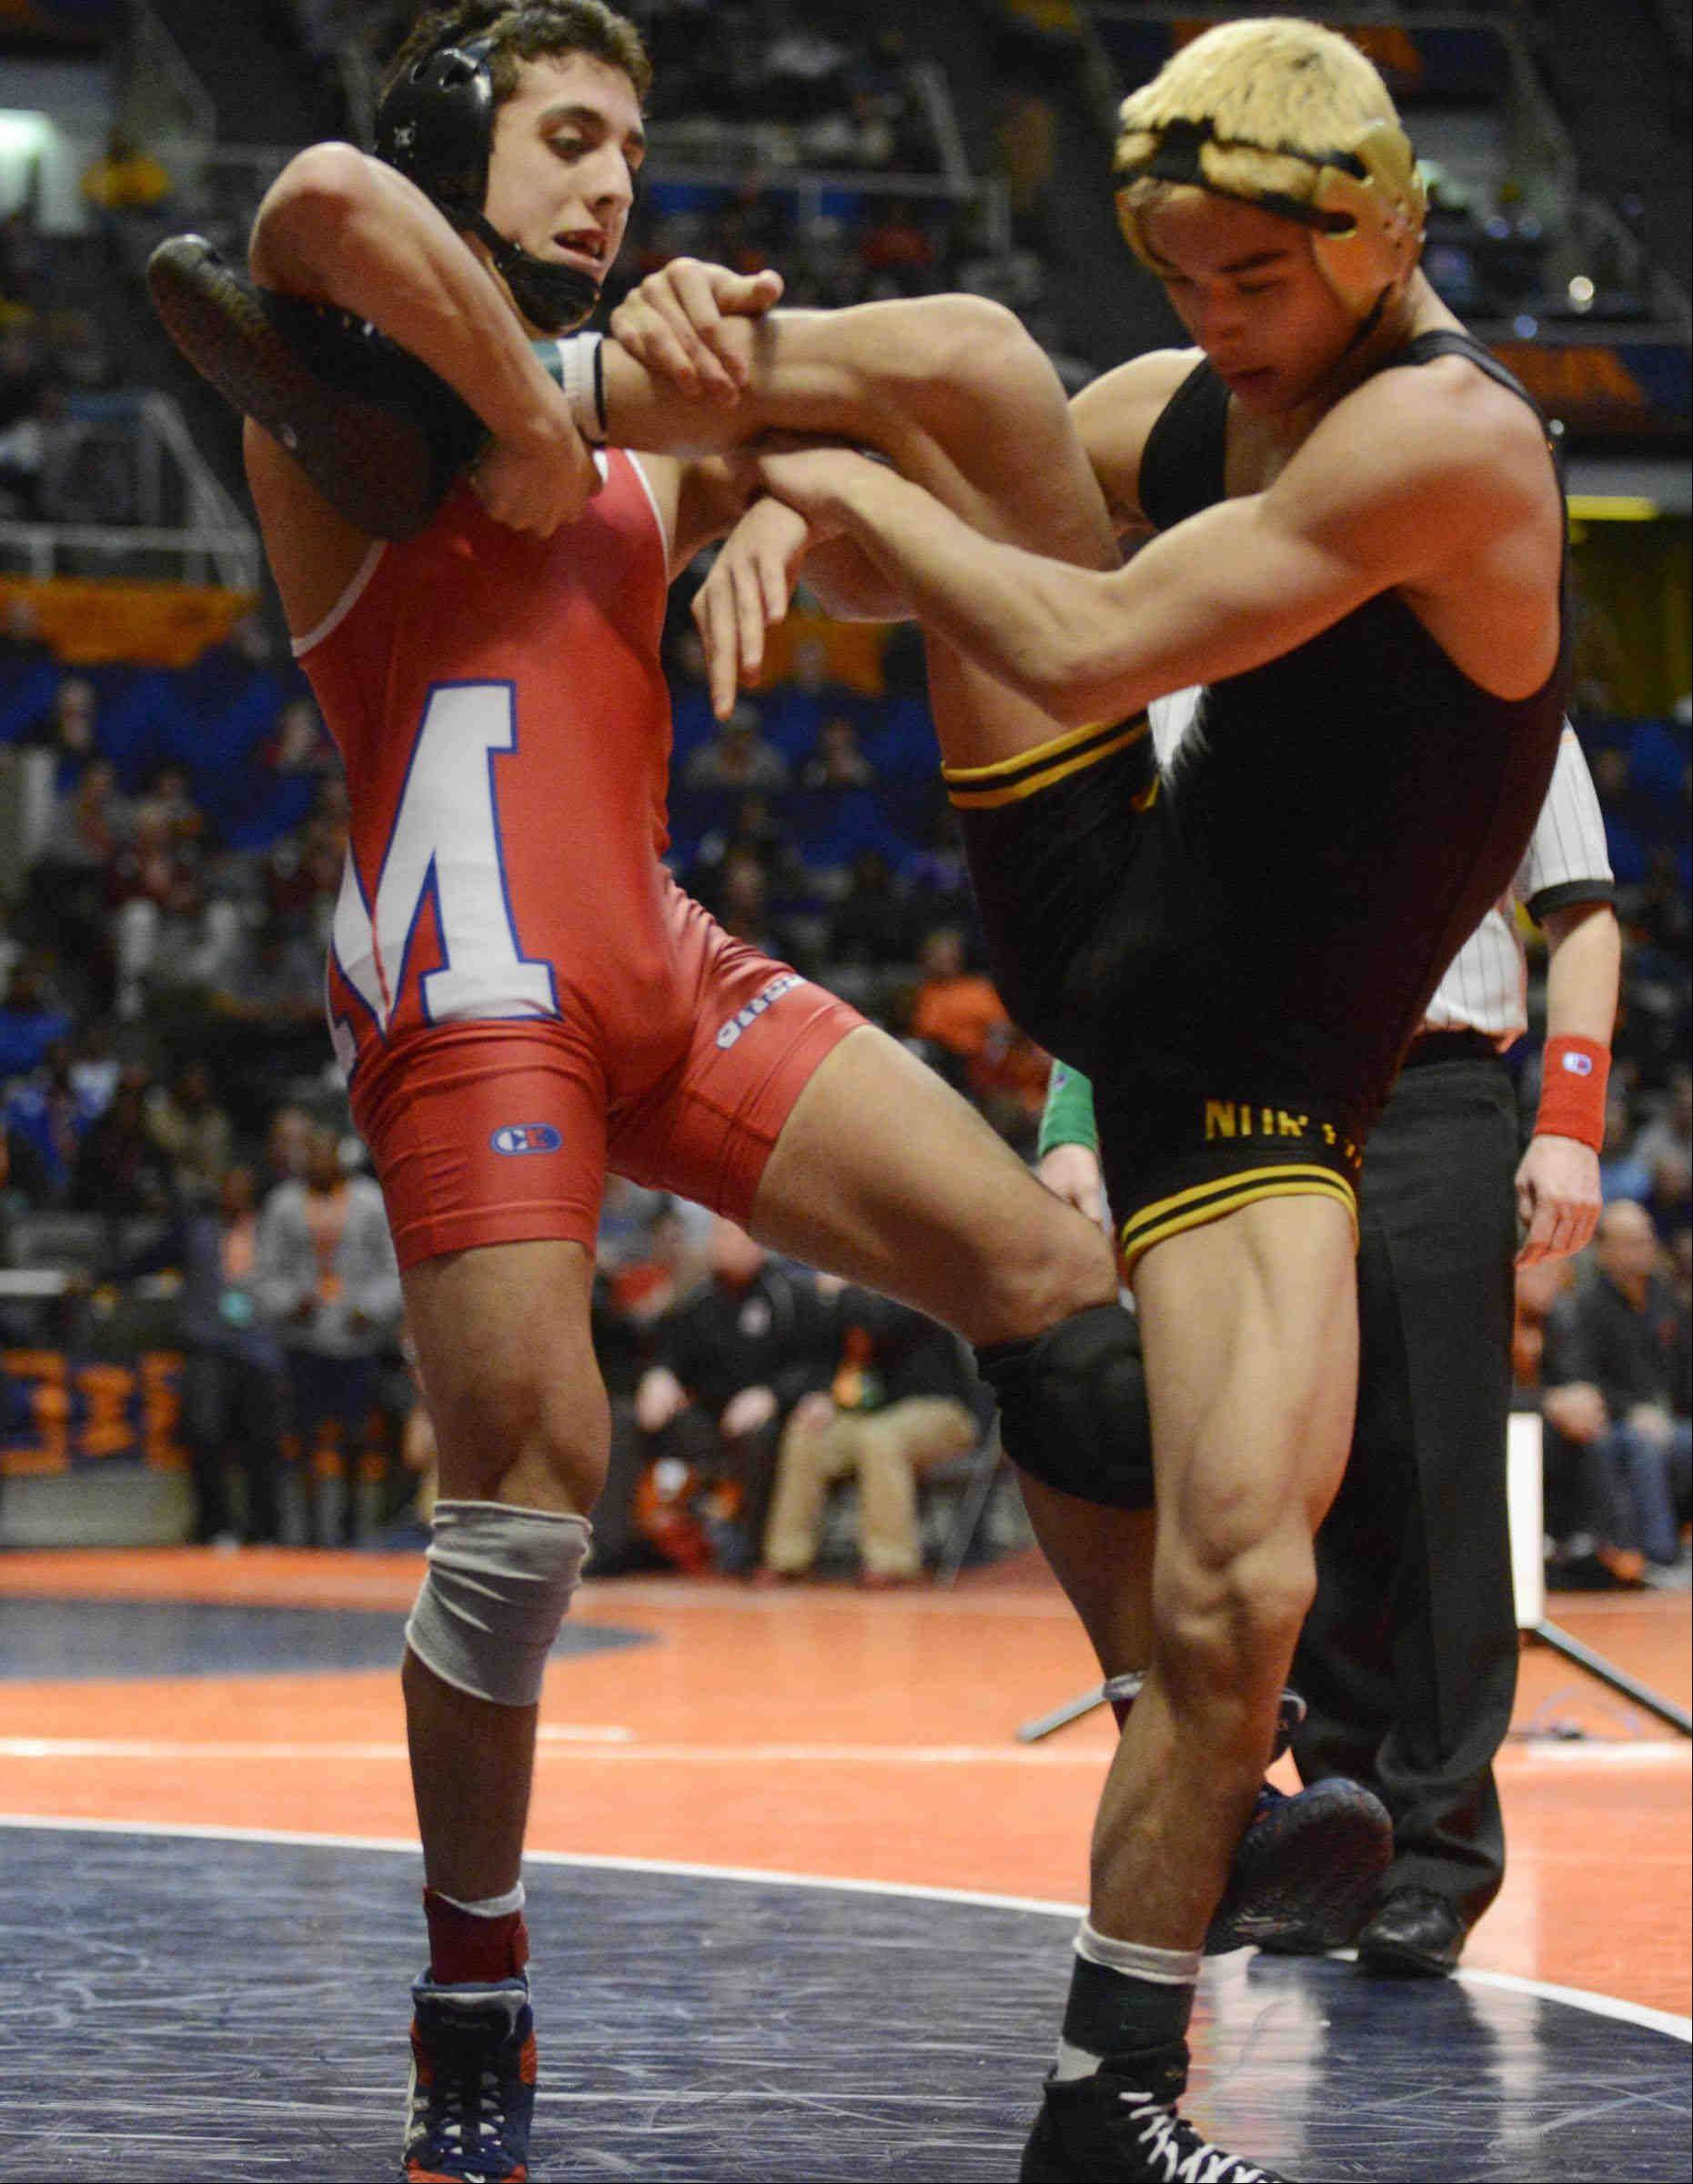 Marmion Academy's Johnny Jimenez wrestles Jon Marmelejo of Glenbard North Friday in the 120-pound Class 3A IHSA semifinal wrestling match at Assembly Hall in Champaign. Jimenez won.